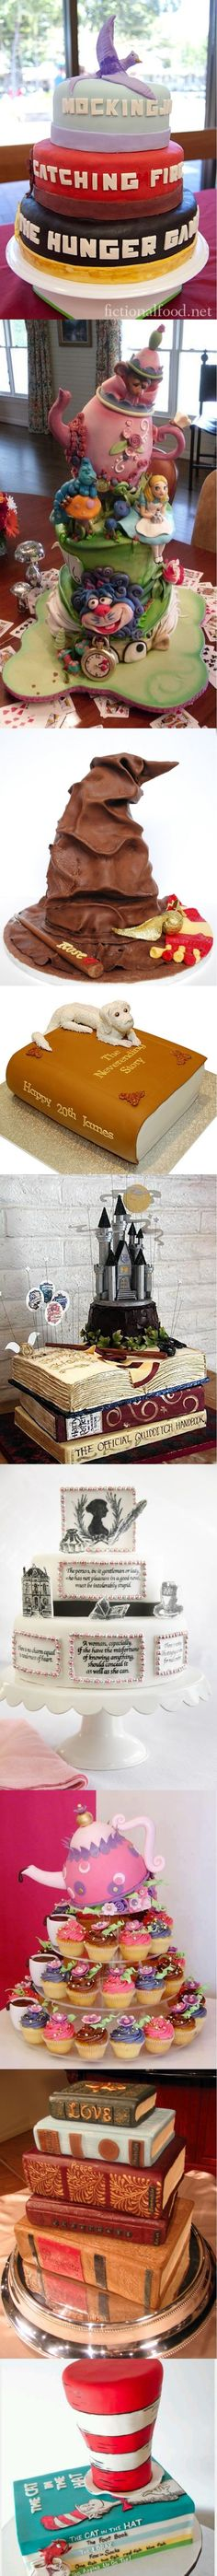 Amazing cakes inspired by the book ........  Visit: http://pinterest.com/okknihovna/book-cake/